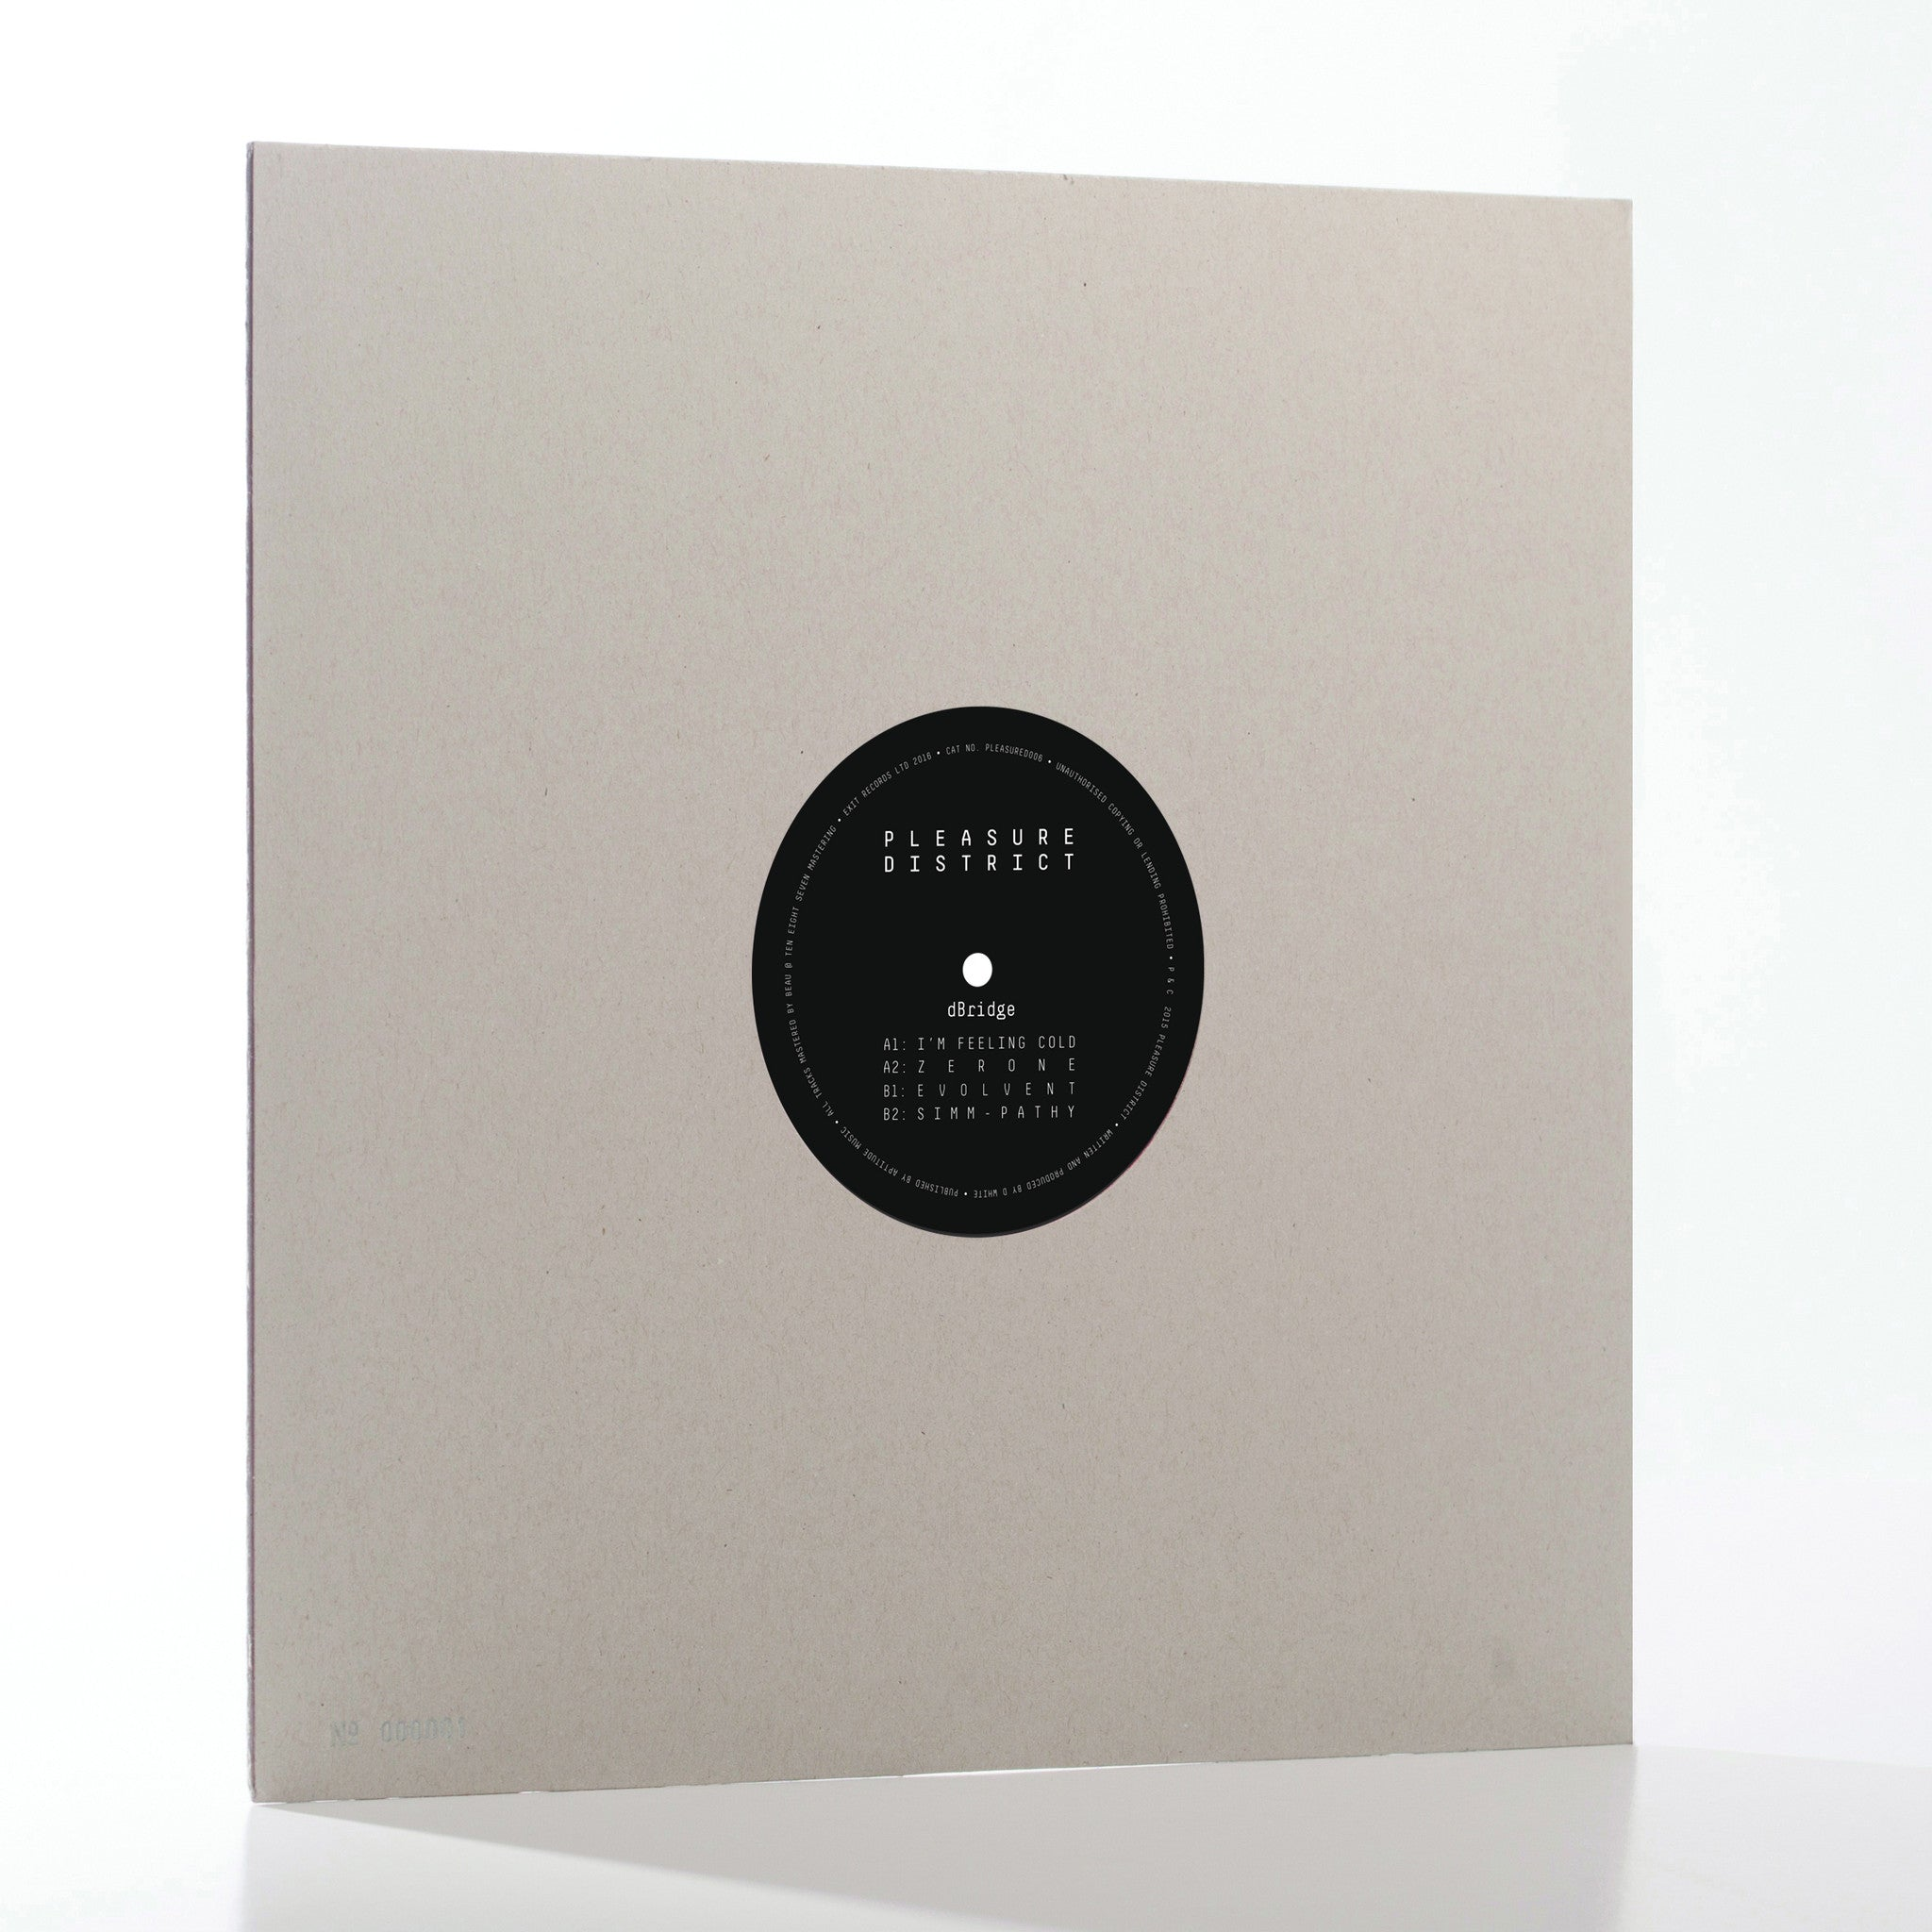 dBridge - PleasureDistrict006 , Vinyl - Pleasure District, Unearthed Sounds